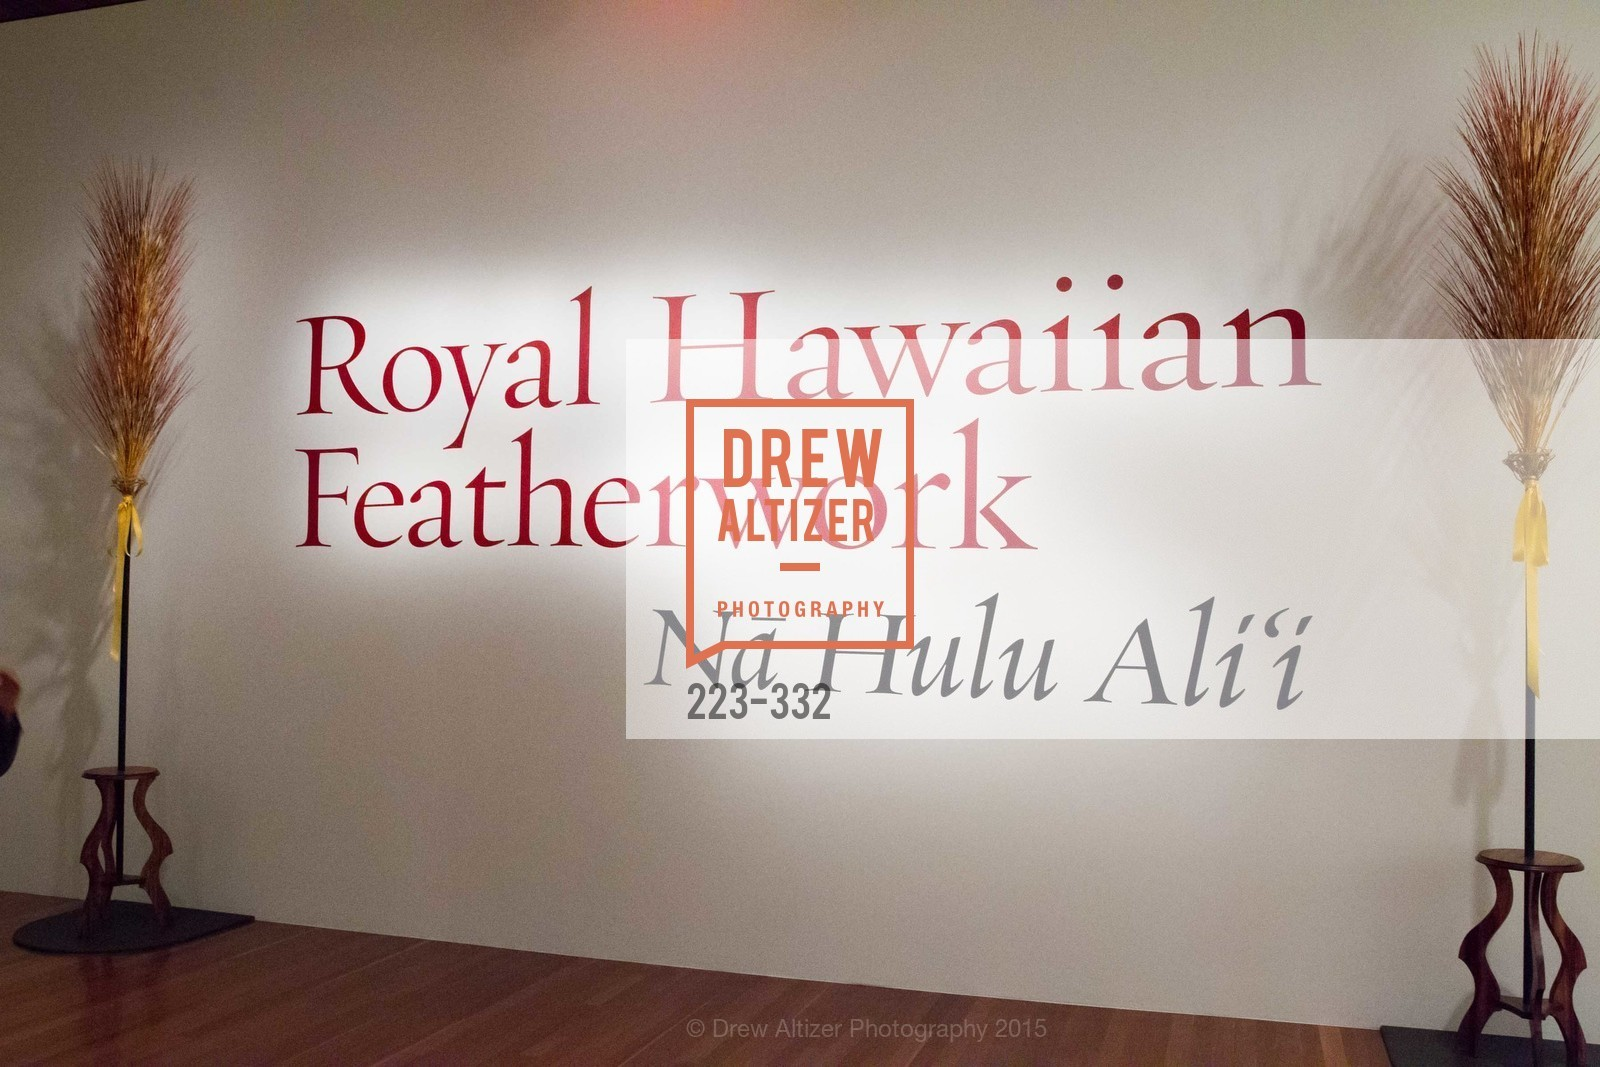 Atmosphere, Royal Hawaiian Featherwork Donor Reception at de Young, de Young Museum, September 30th, 2015,Drew Altizer, Drew Altizer Photography, full-service event agency, private events, San Francisco photographer, photographer California